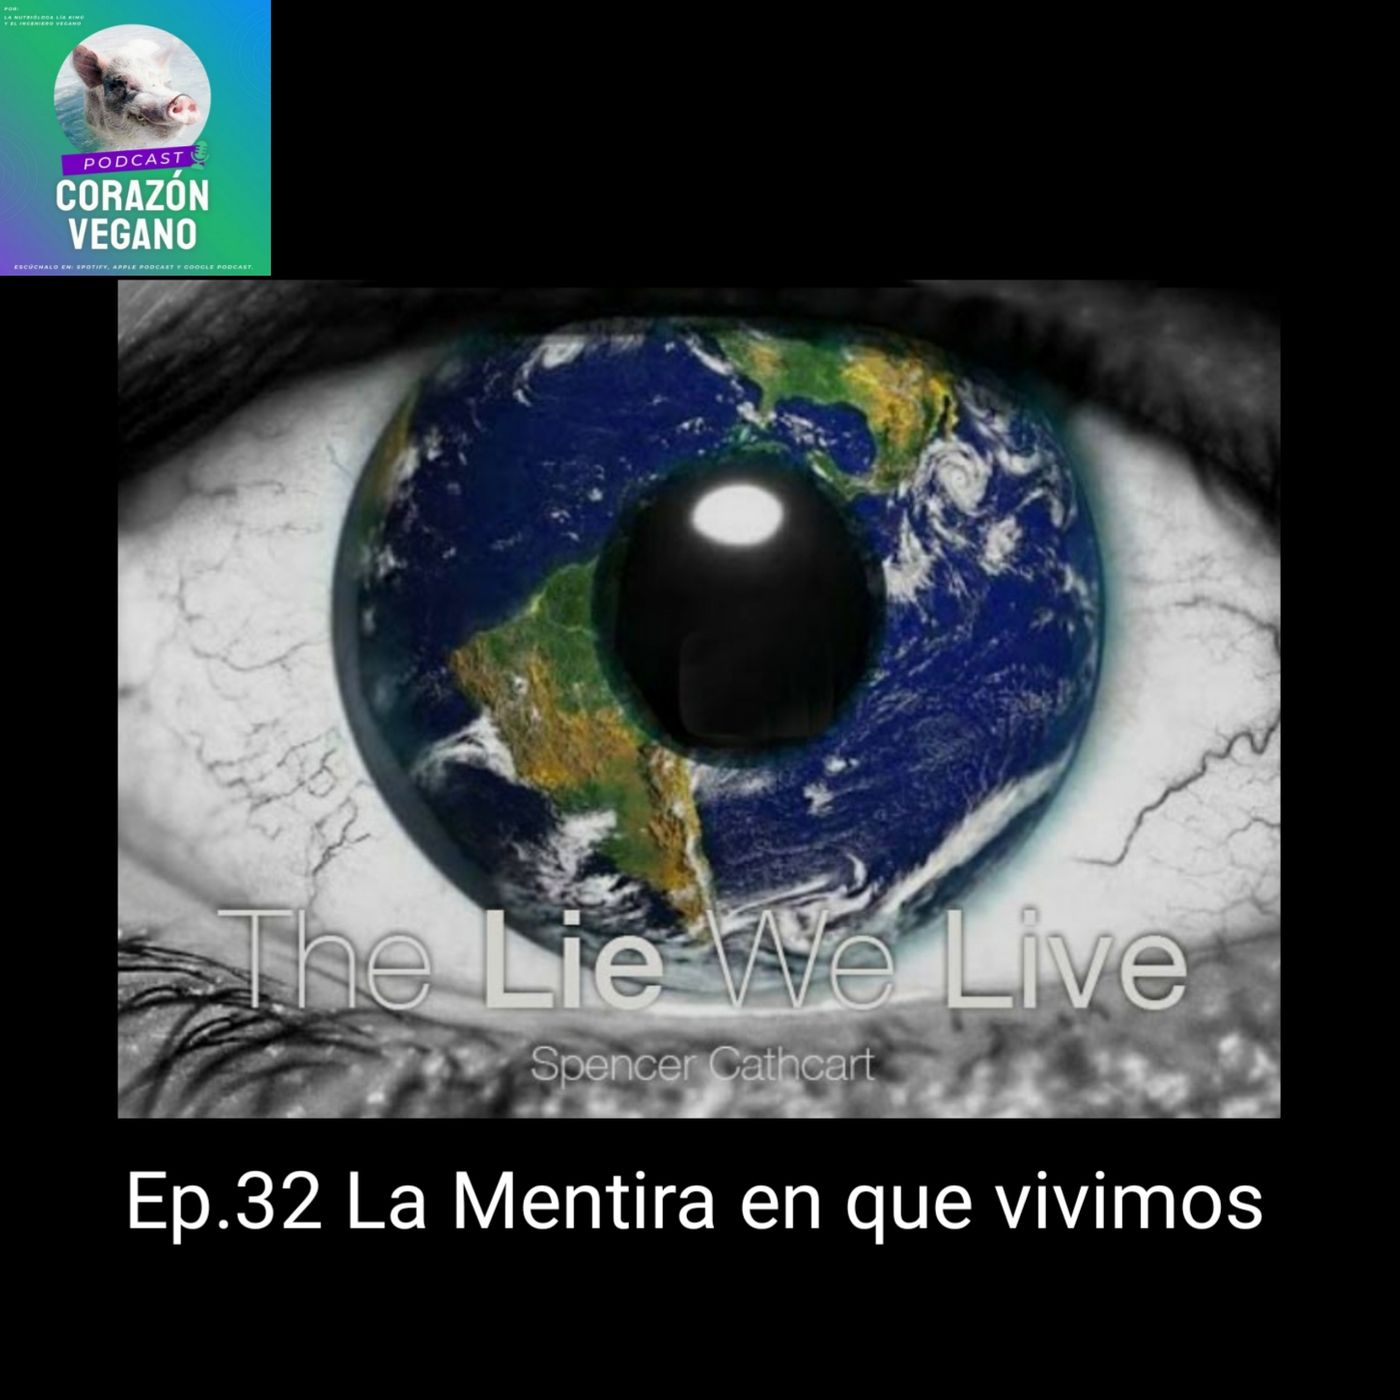 Ep.32 La Mentira que Vivimos-The Lie We Live